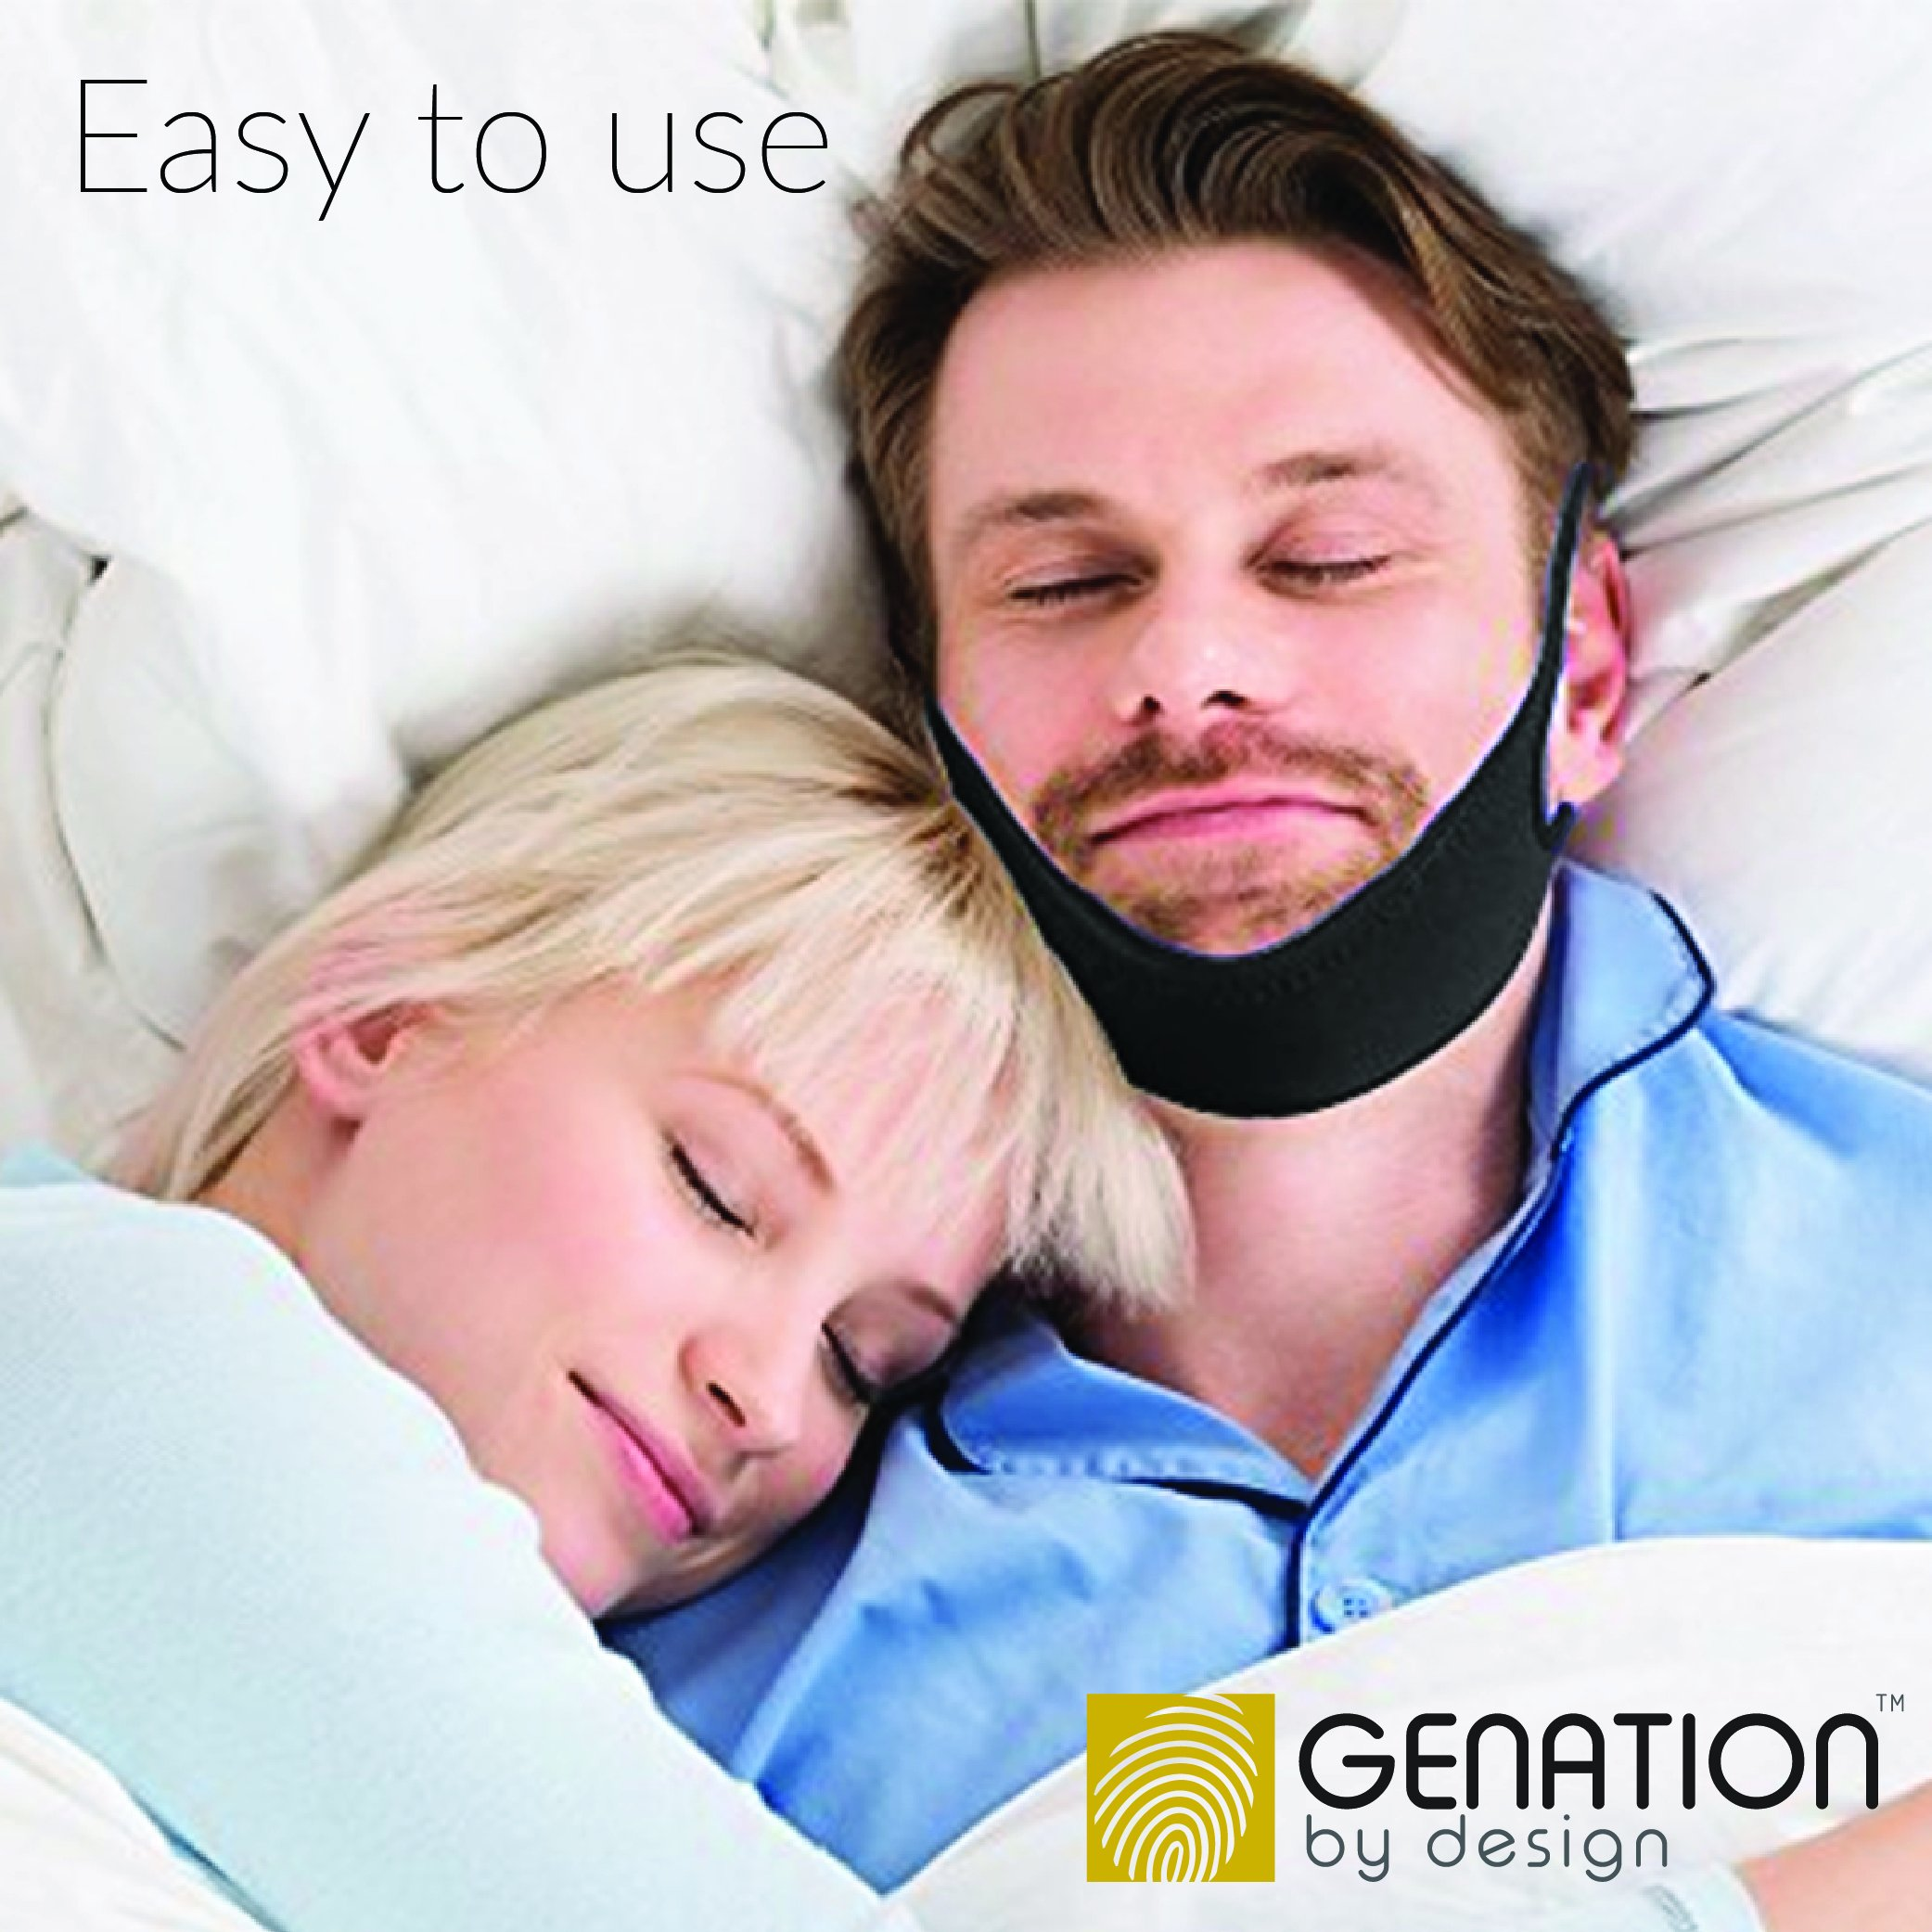 Genation Anti Snoring Chin Strap – Adjustable Sleep Aid Device for Men, Women and Kids – The Ultimate Snoring Solution – Safe, Simple and Effective for a Peaceful Night's Sleep